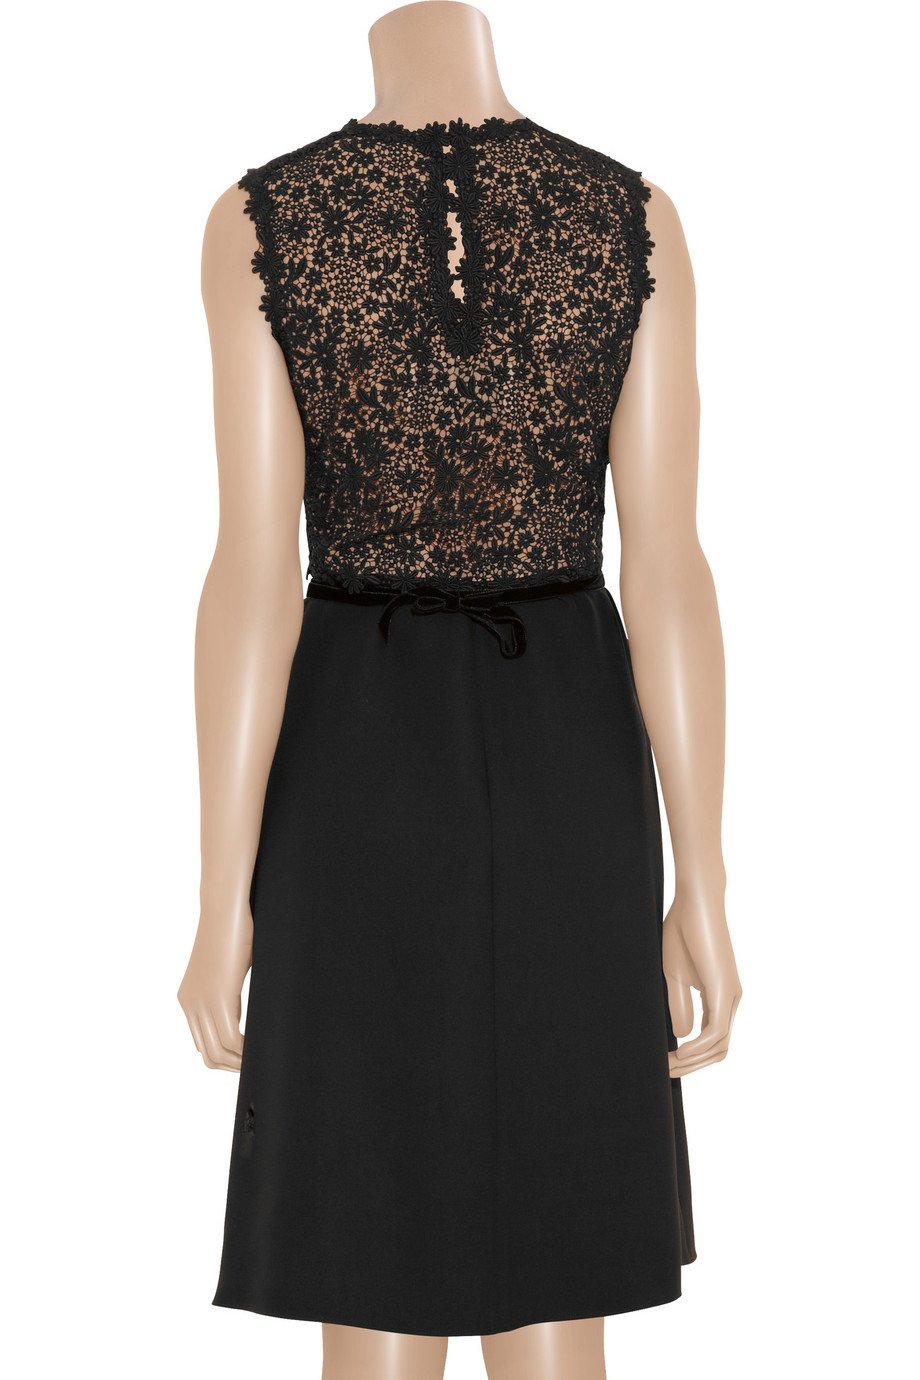 Valentino Silk Crepe And Lace Dress In Black Lyst